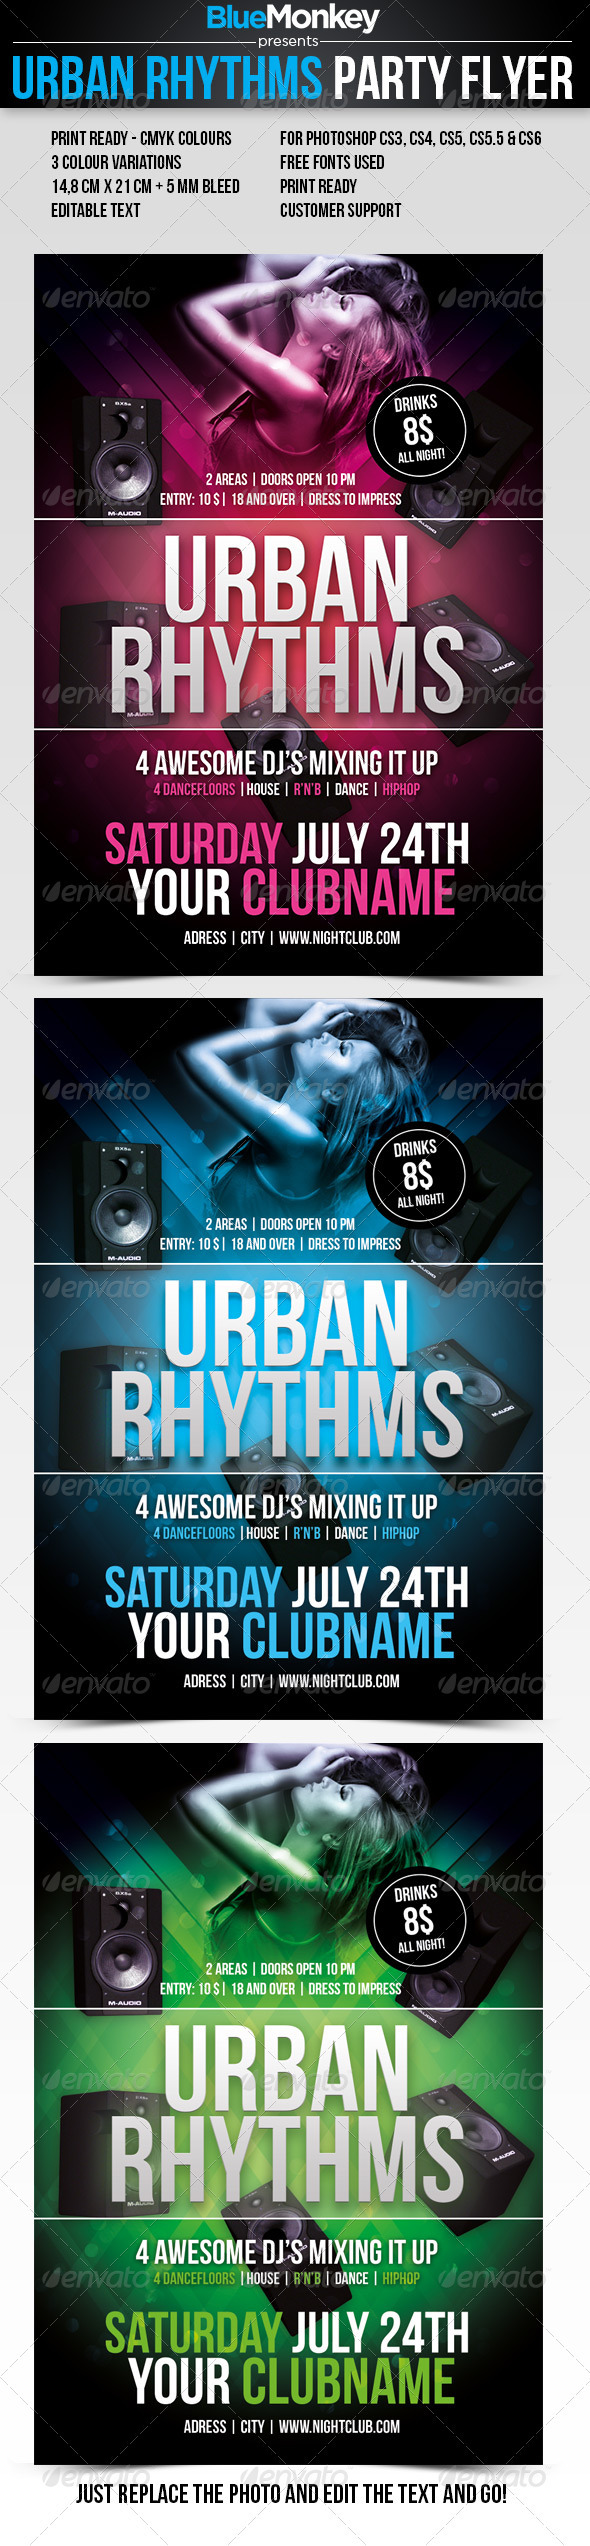 Urban Rhythms Party Flyer - Clubs & Parties Events